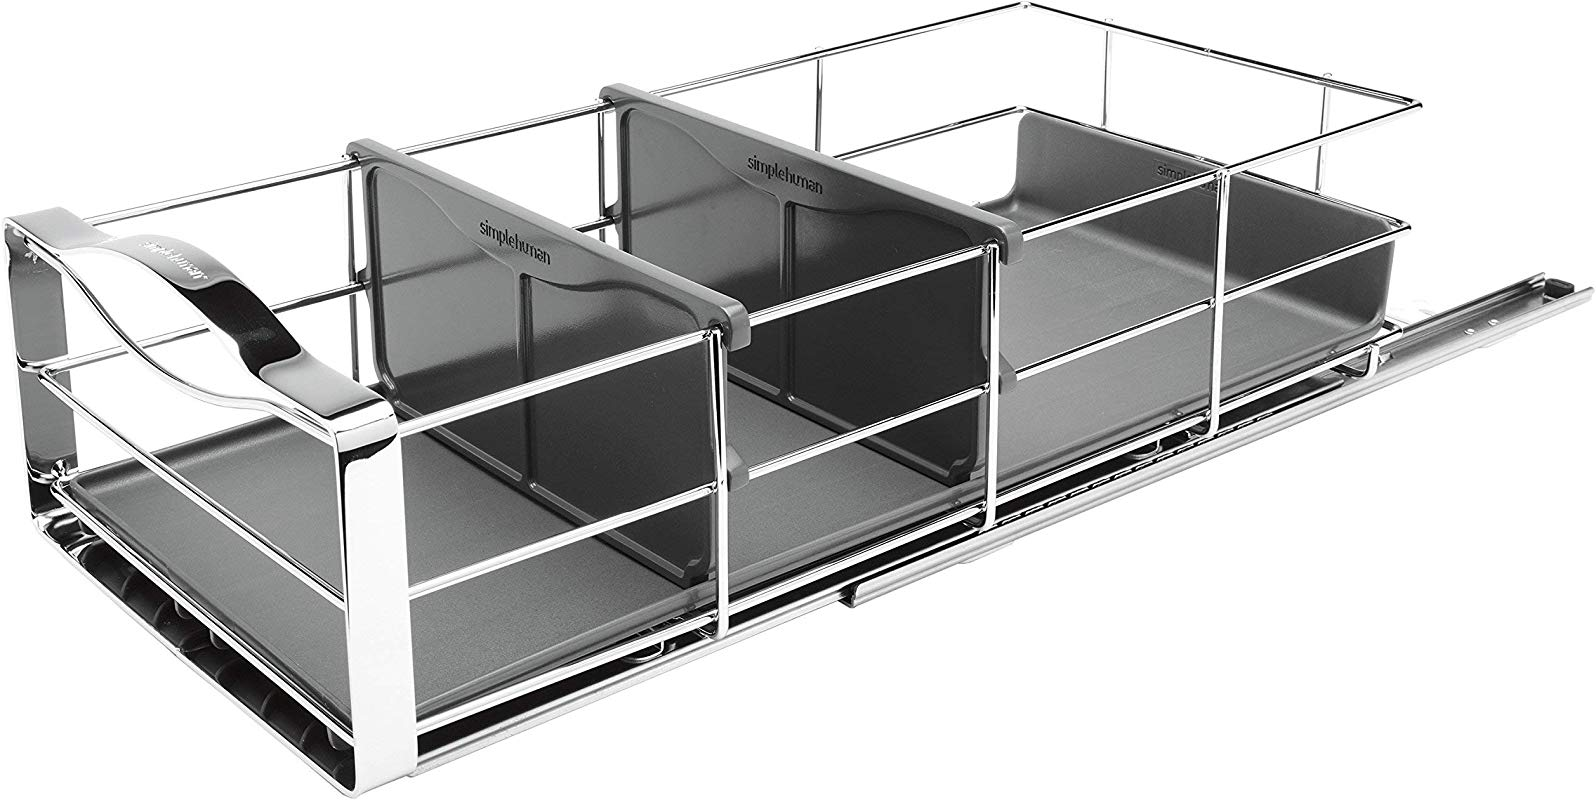 Simplehuman Pull Out Cabinet Organizer 9 Stainless Steel Renewed